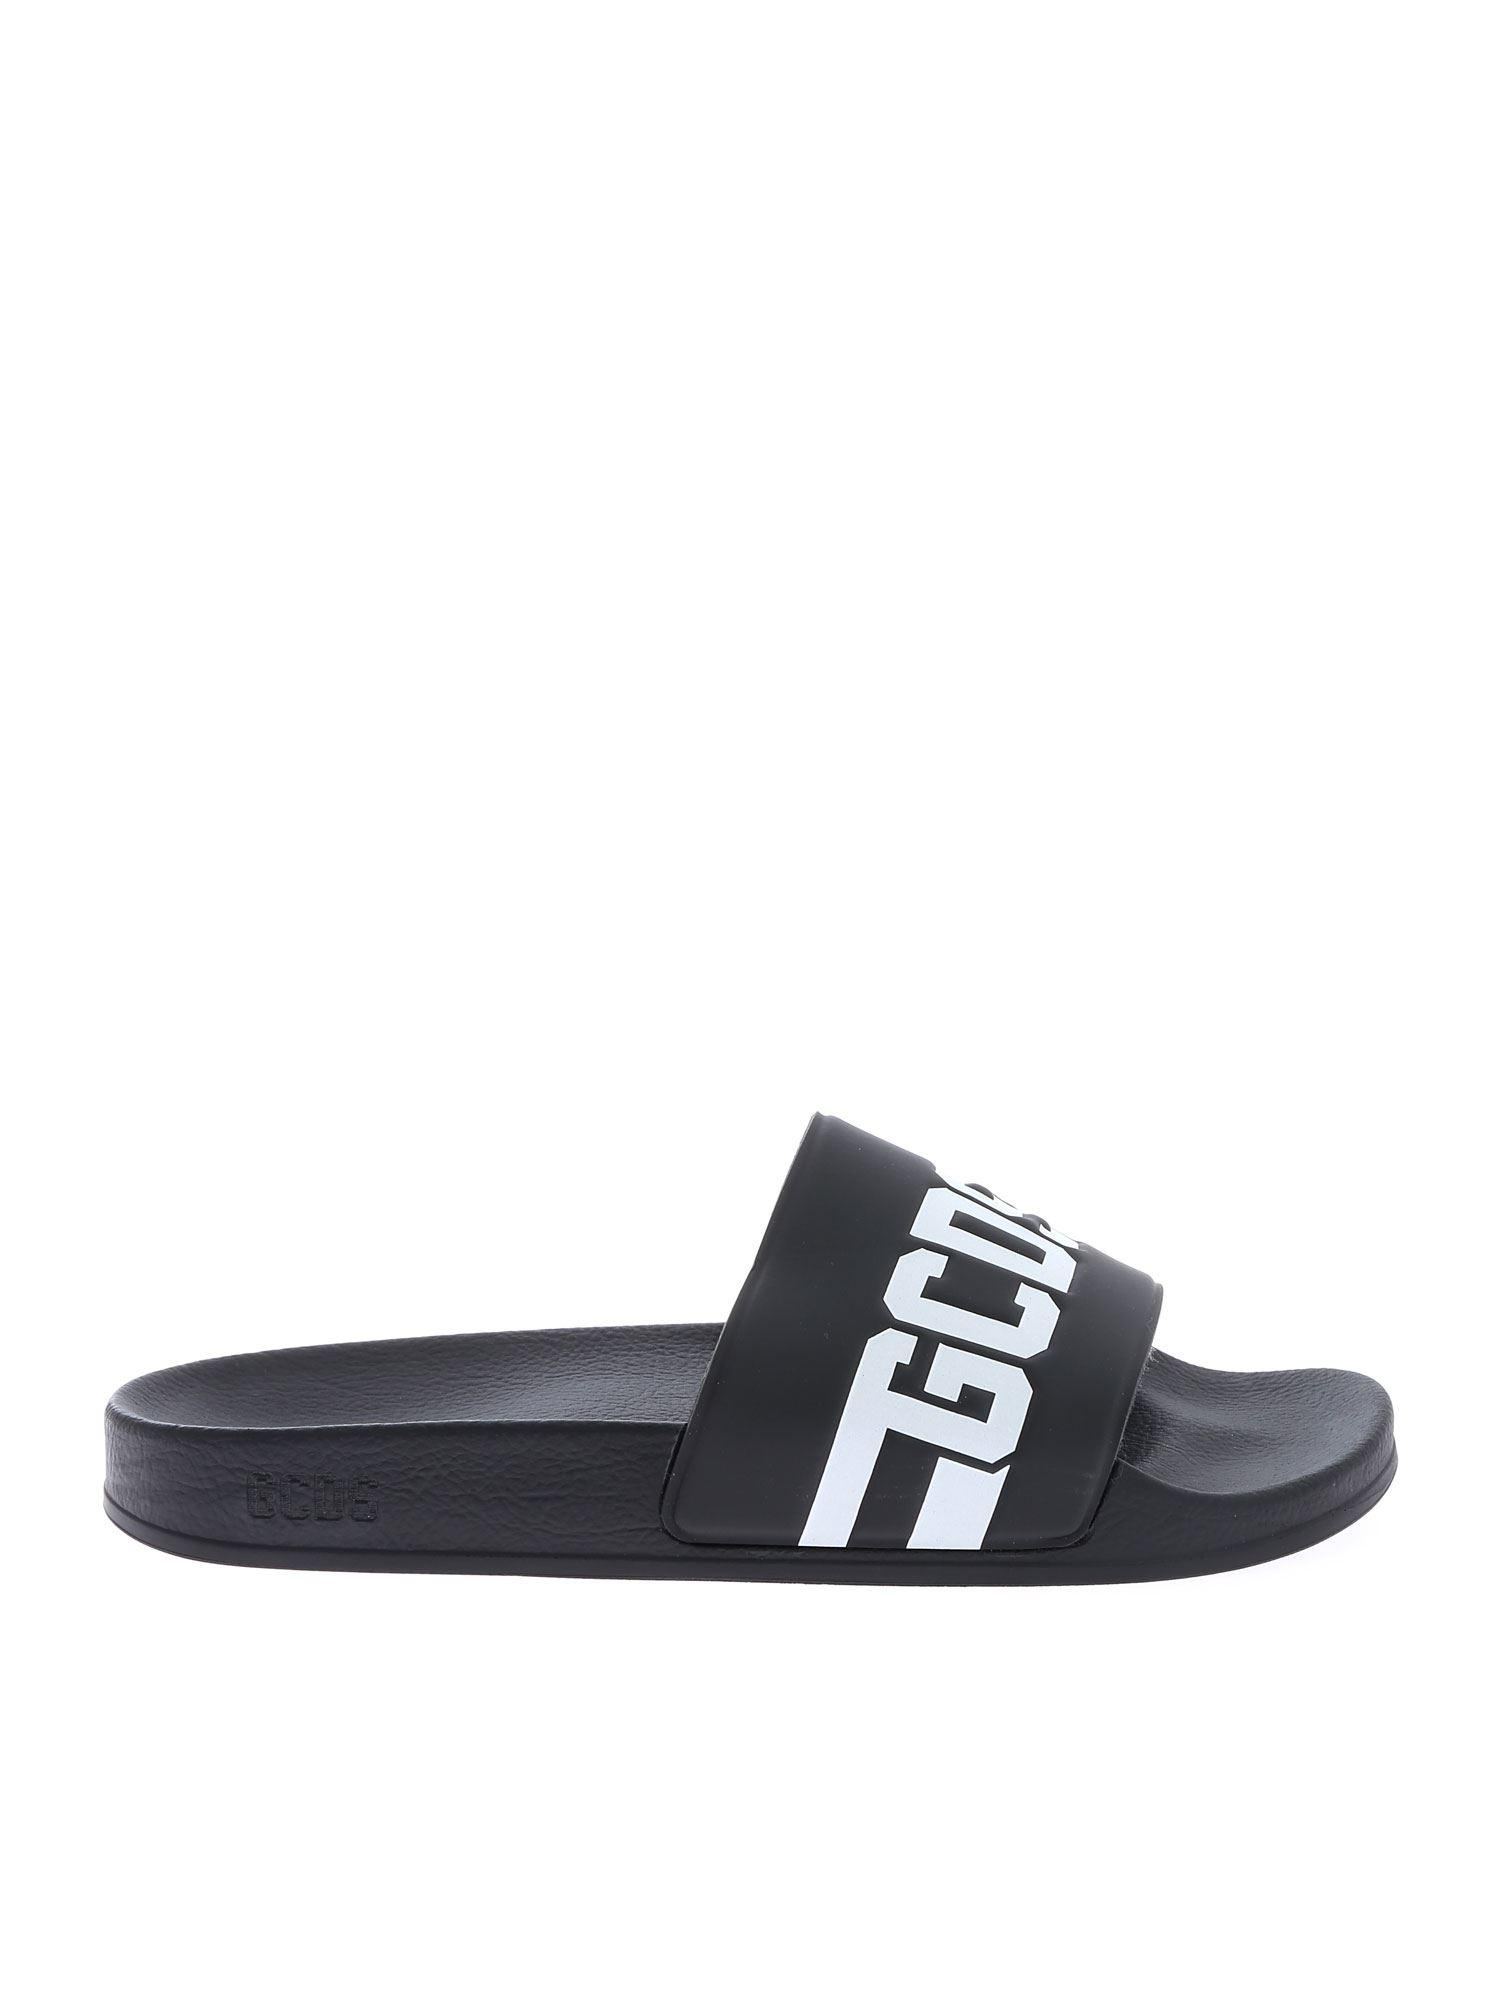 2e629407fc3c Gcds Logo Embossed Rubber Slide Sandals in Black for Men - Save 51 ...